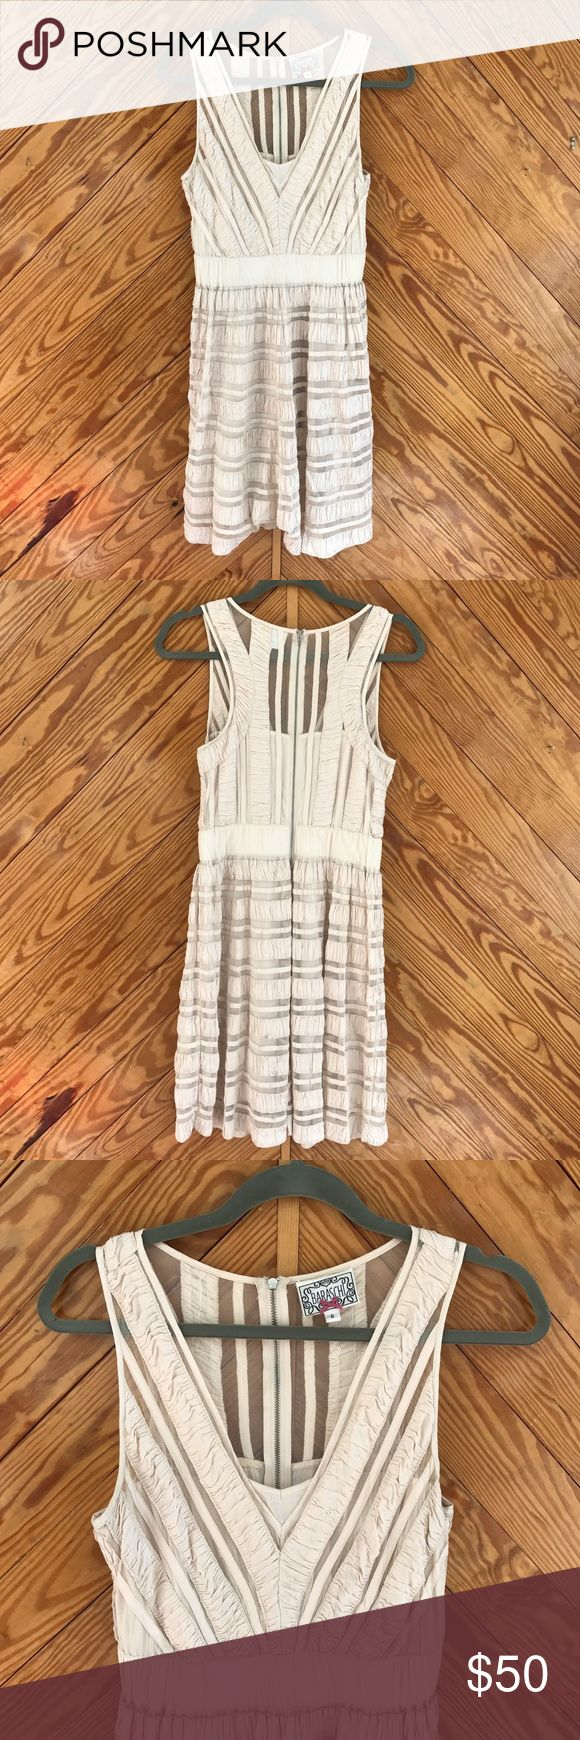 """Yoana Baraschi Deep V Sheer Cream Cocktail Dress Gently used condition with minimal wear and wash - one minor spot. elastic waistband. Exposed back zipper. Fully lined. Waist 13.5-15"""". Bust 15"""". D4 Yoana Baraschi Dresses"""